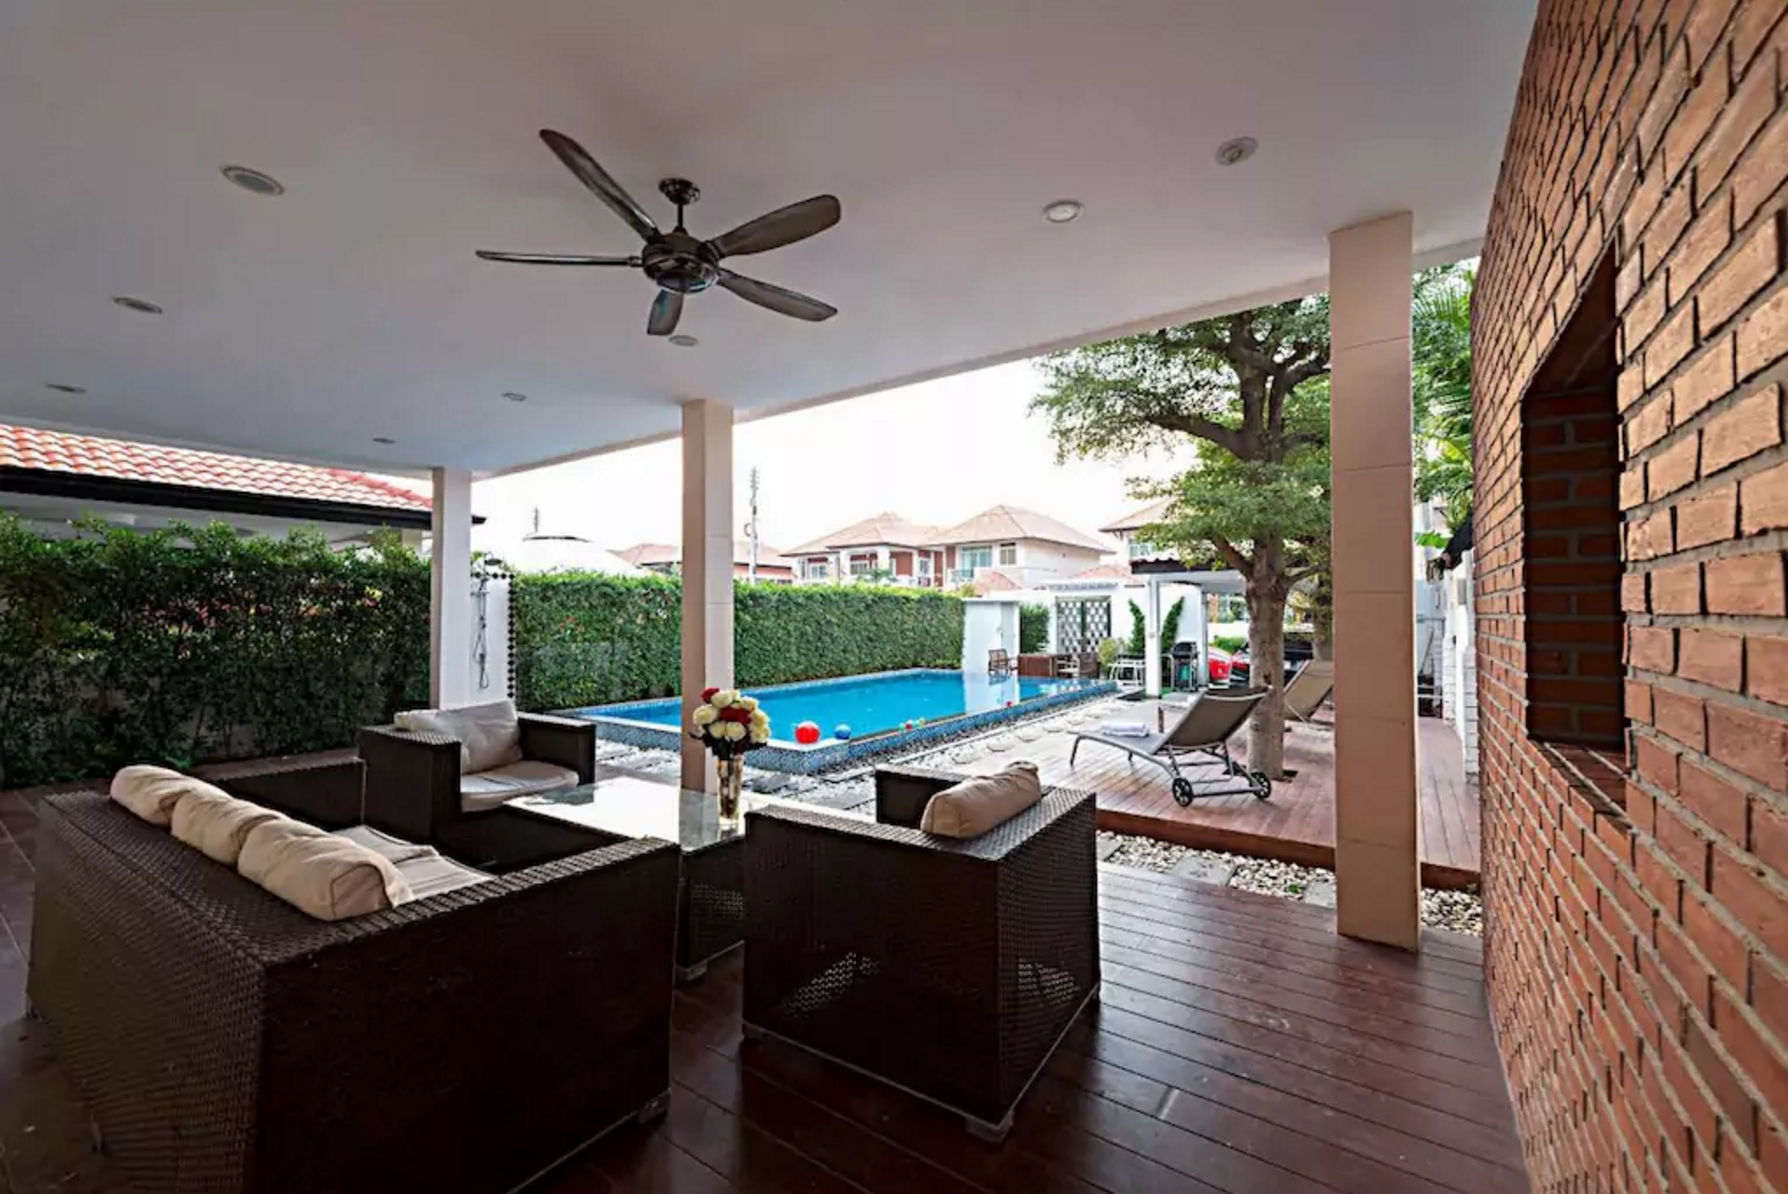 Exquisite 4bd 4 bth Villa with Pool Central Pattaya,Exquisite 4bd 4 bth Villa with Pool Central Pattaya